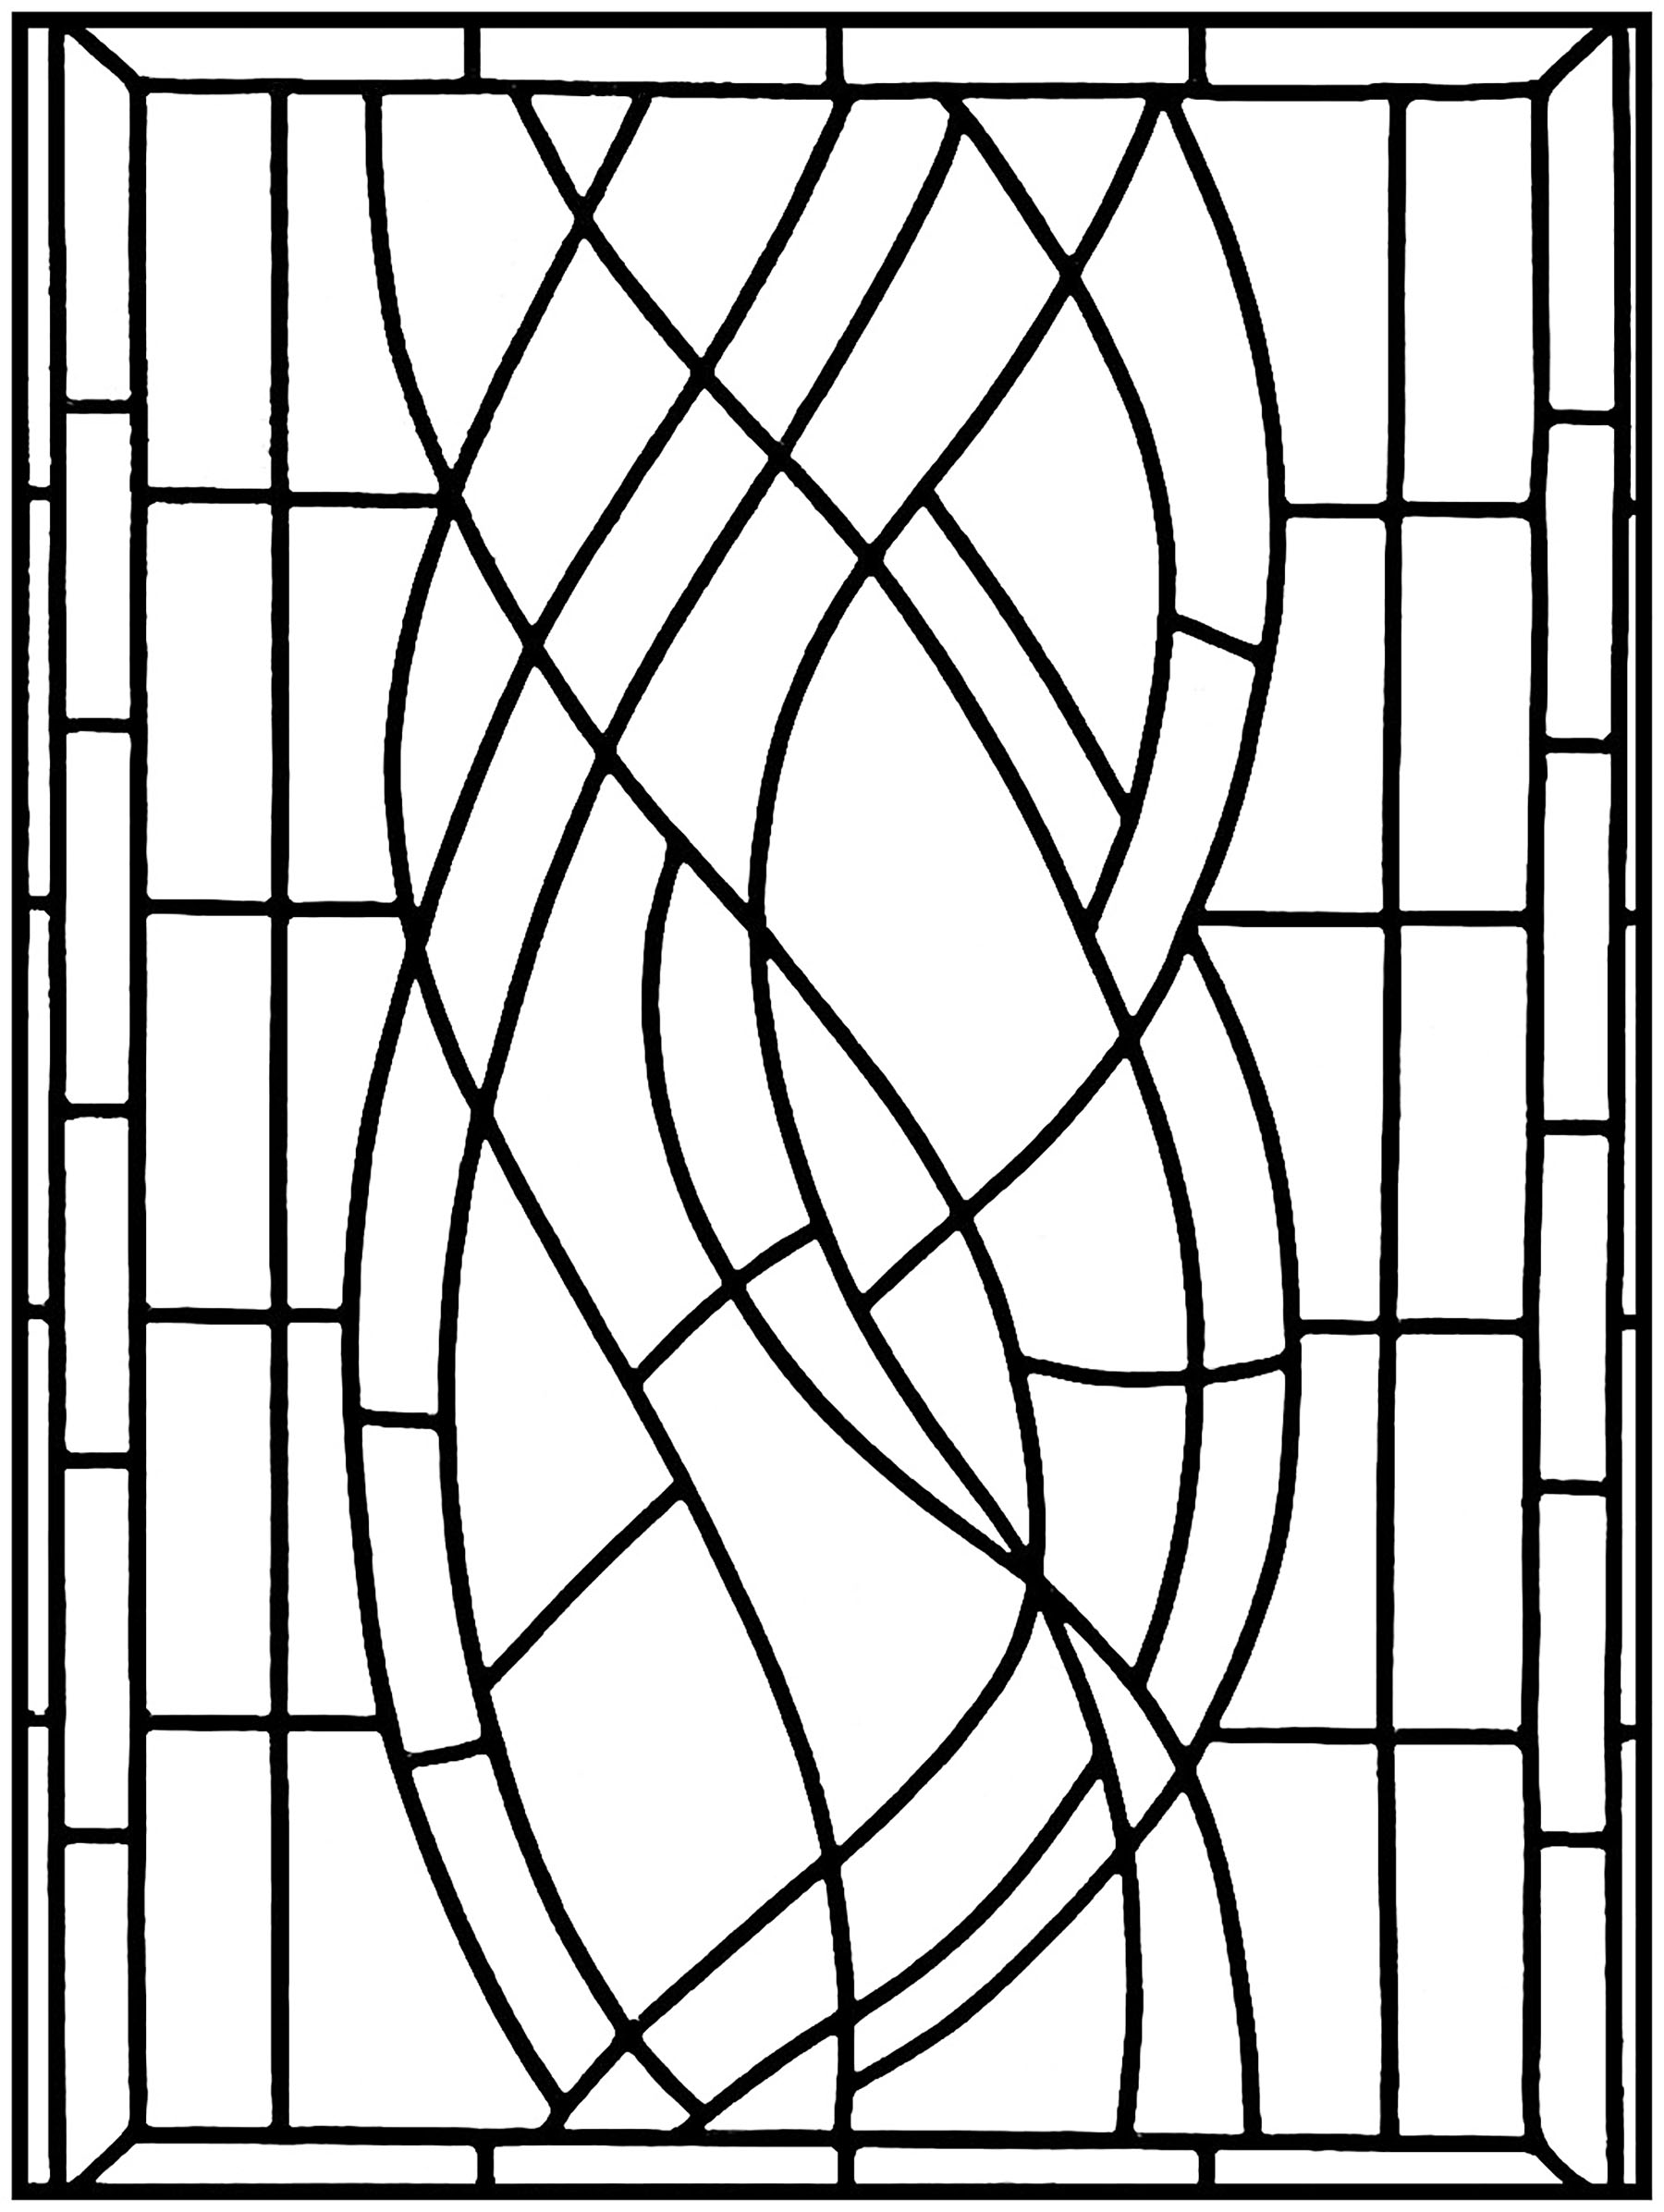 stained glass window coloring pages stained glass coloring pages for adults best coloring pages glass stained coloring window